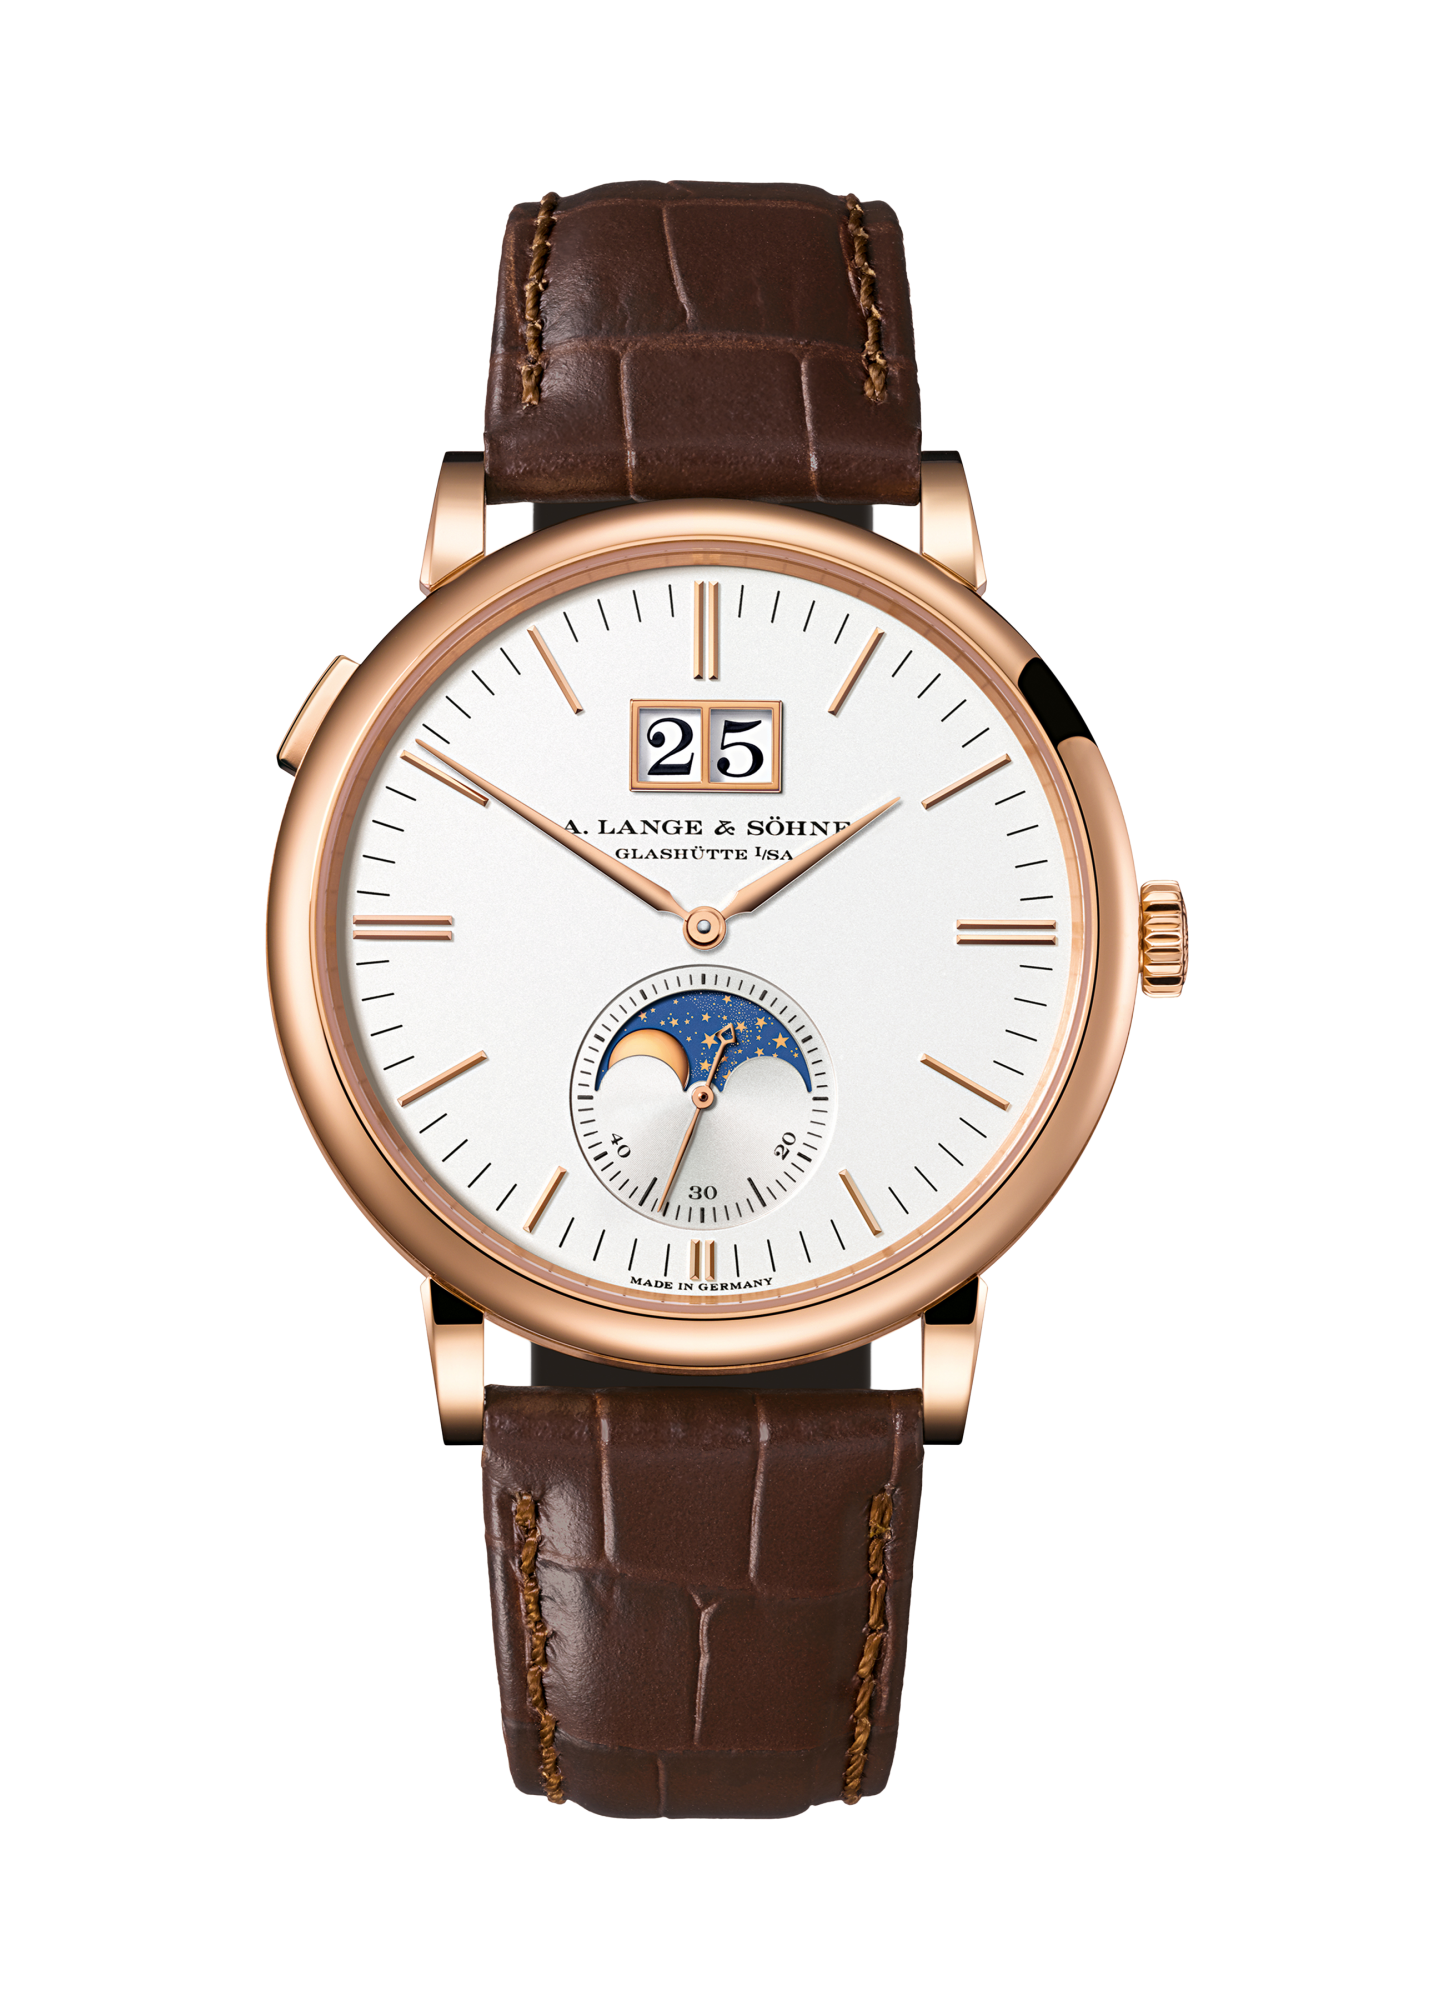 A.L&S Saxonia Moon Phase 384.032